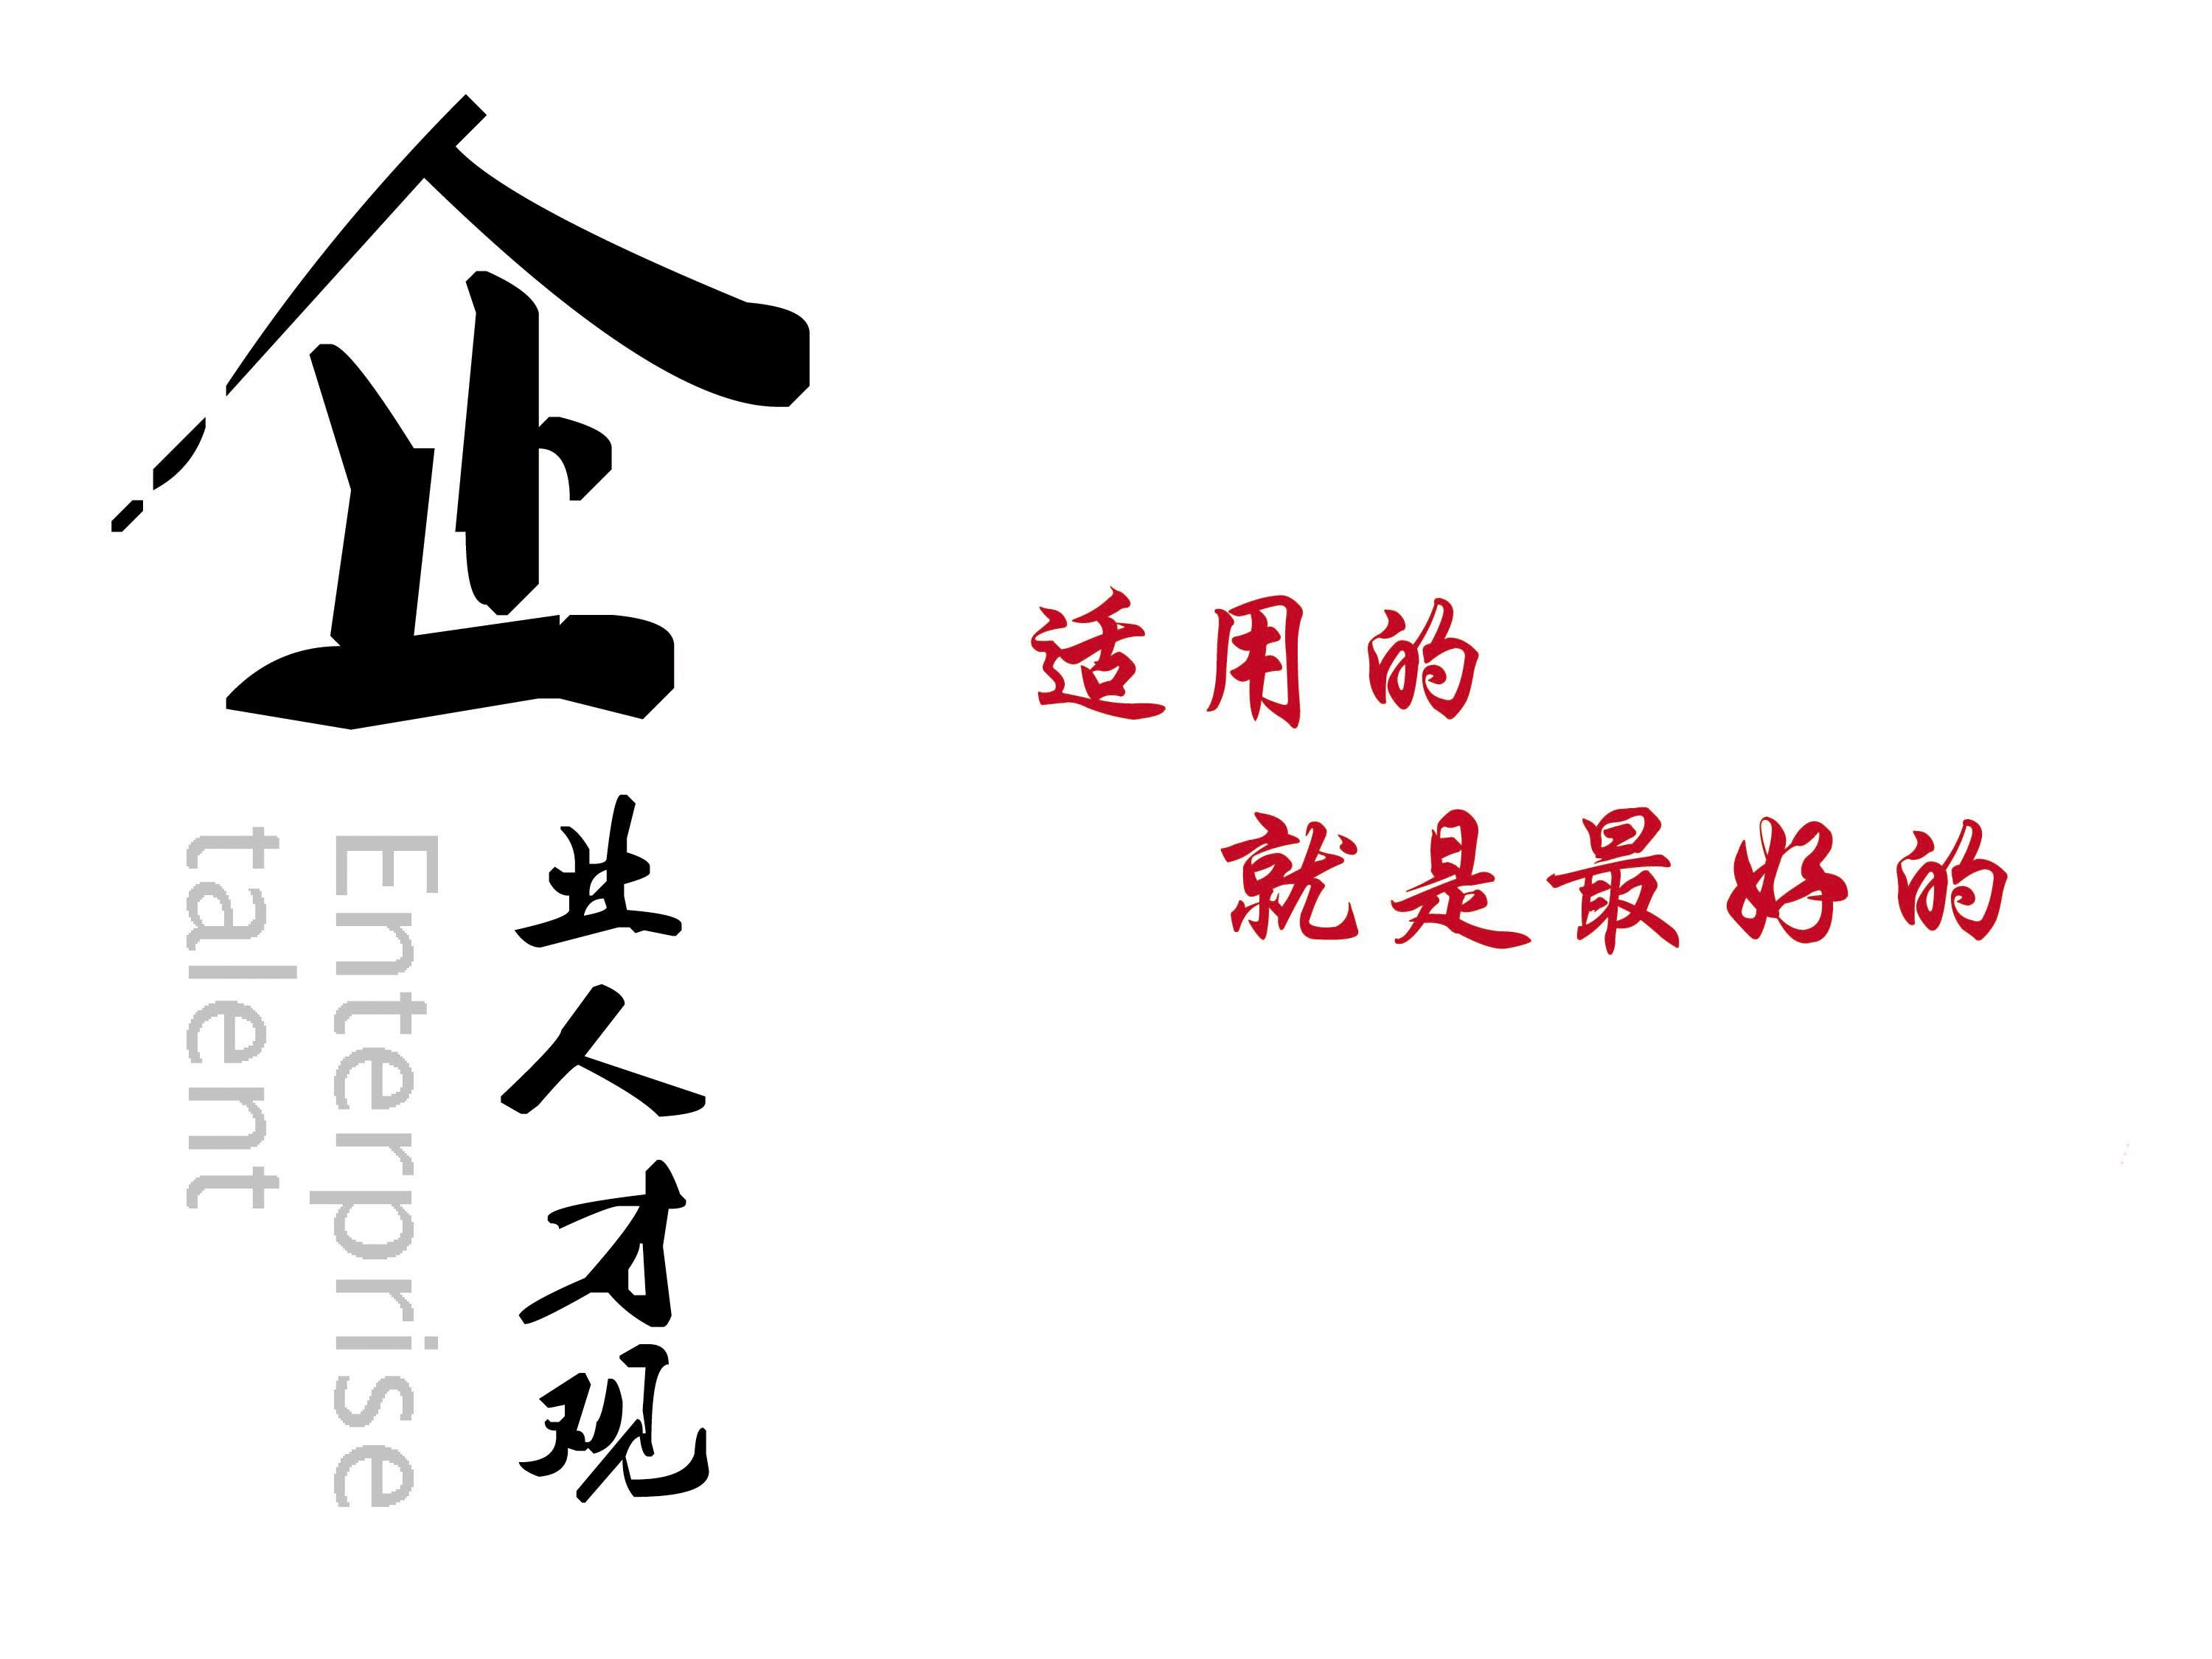 F:\网站备份\V4网站\2019-4-14\wwwroot\Upload\editor\image\2019\04\06\6369017268588519144183119.jpg